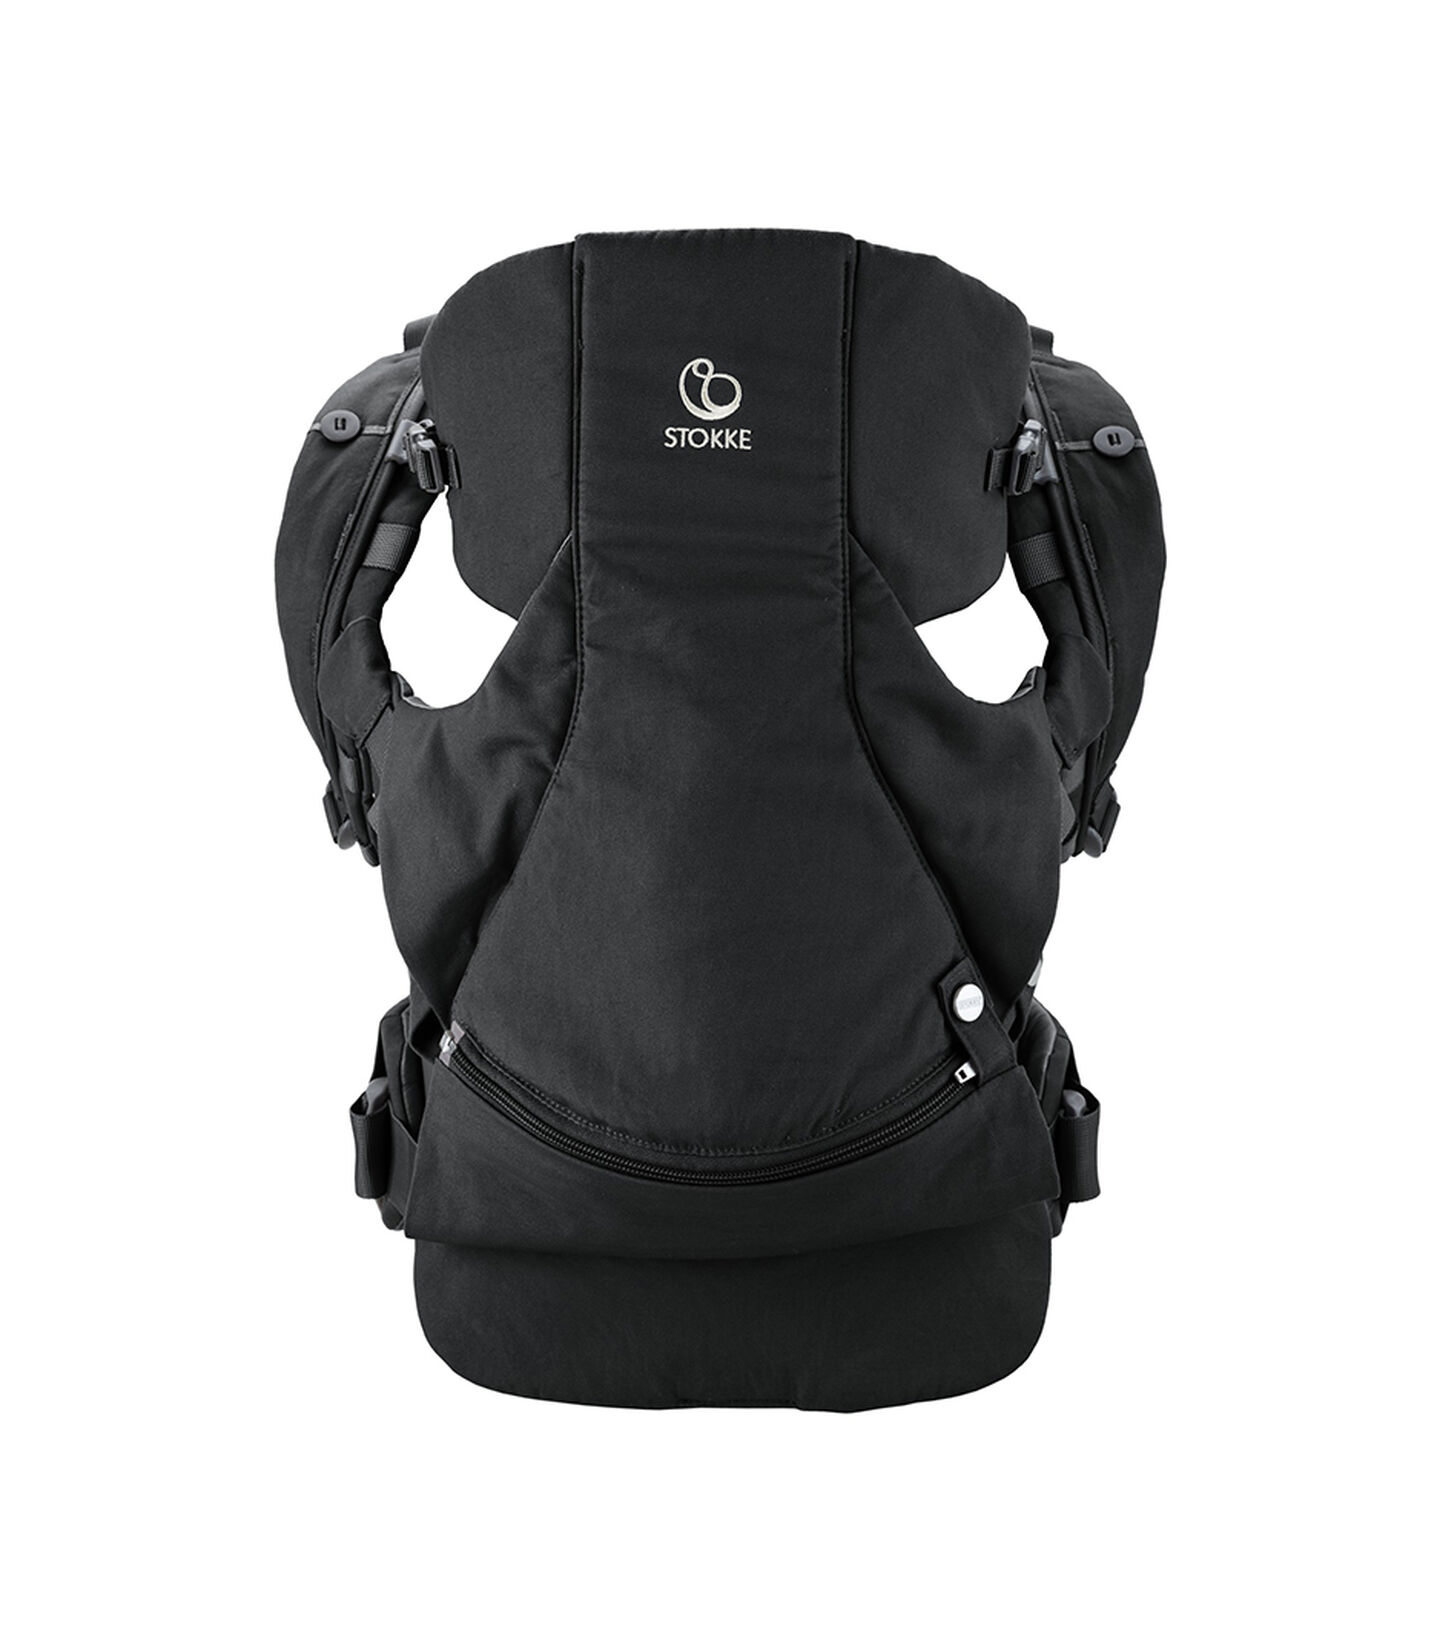 Stokke® MyCarrier™  Bauchtrage Black, Black, mainview view 2